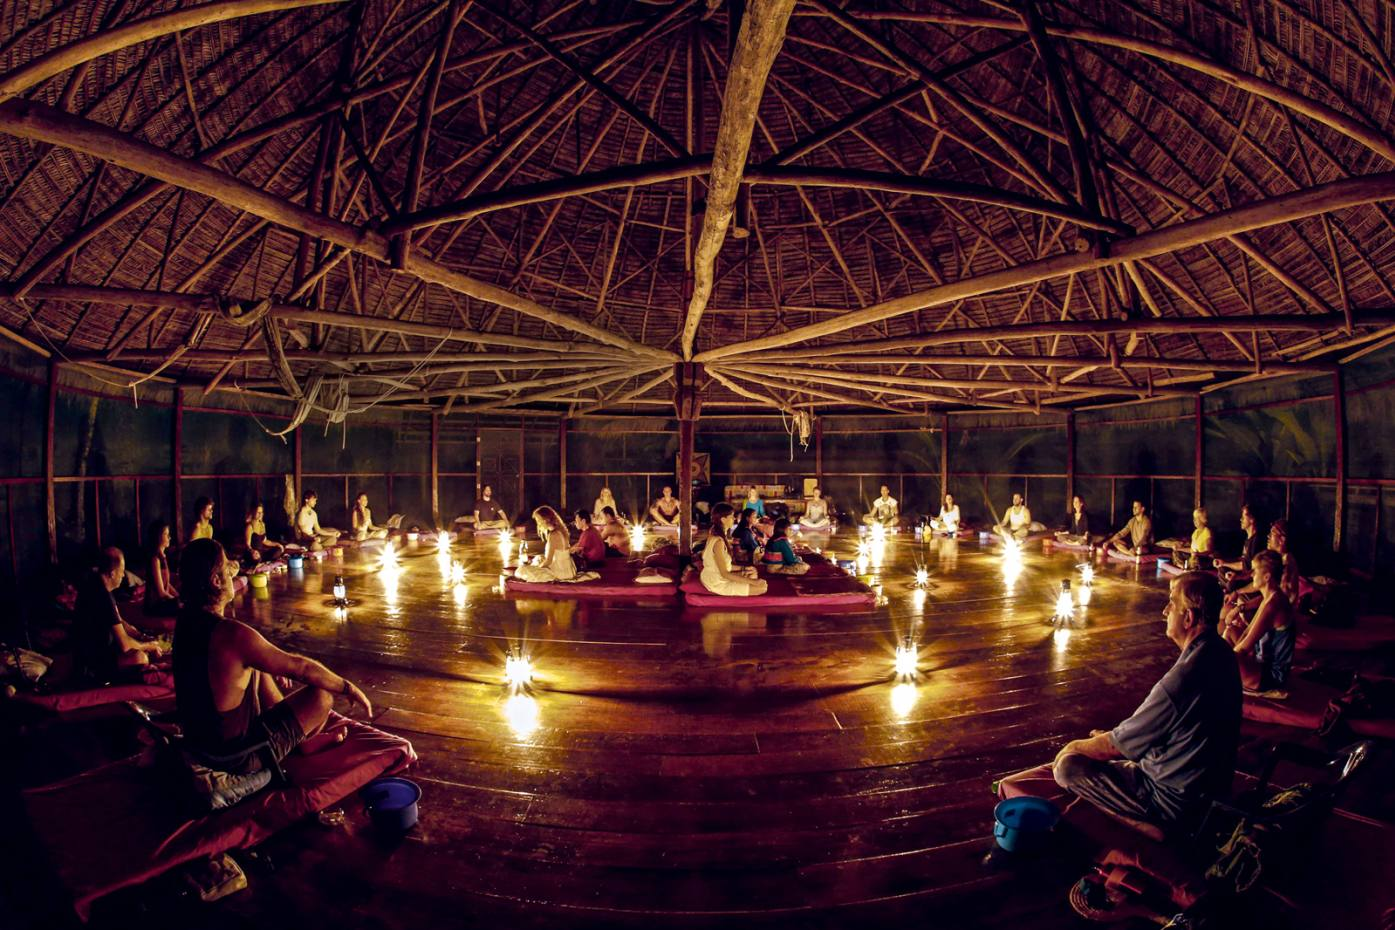 The start of an ayahuasca ceremony at the Temple of the Way of Light in Peru